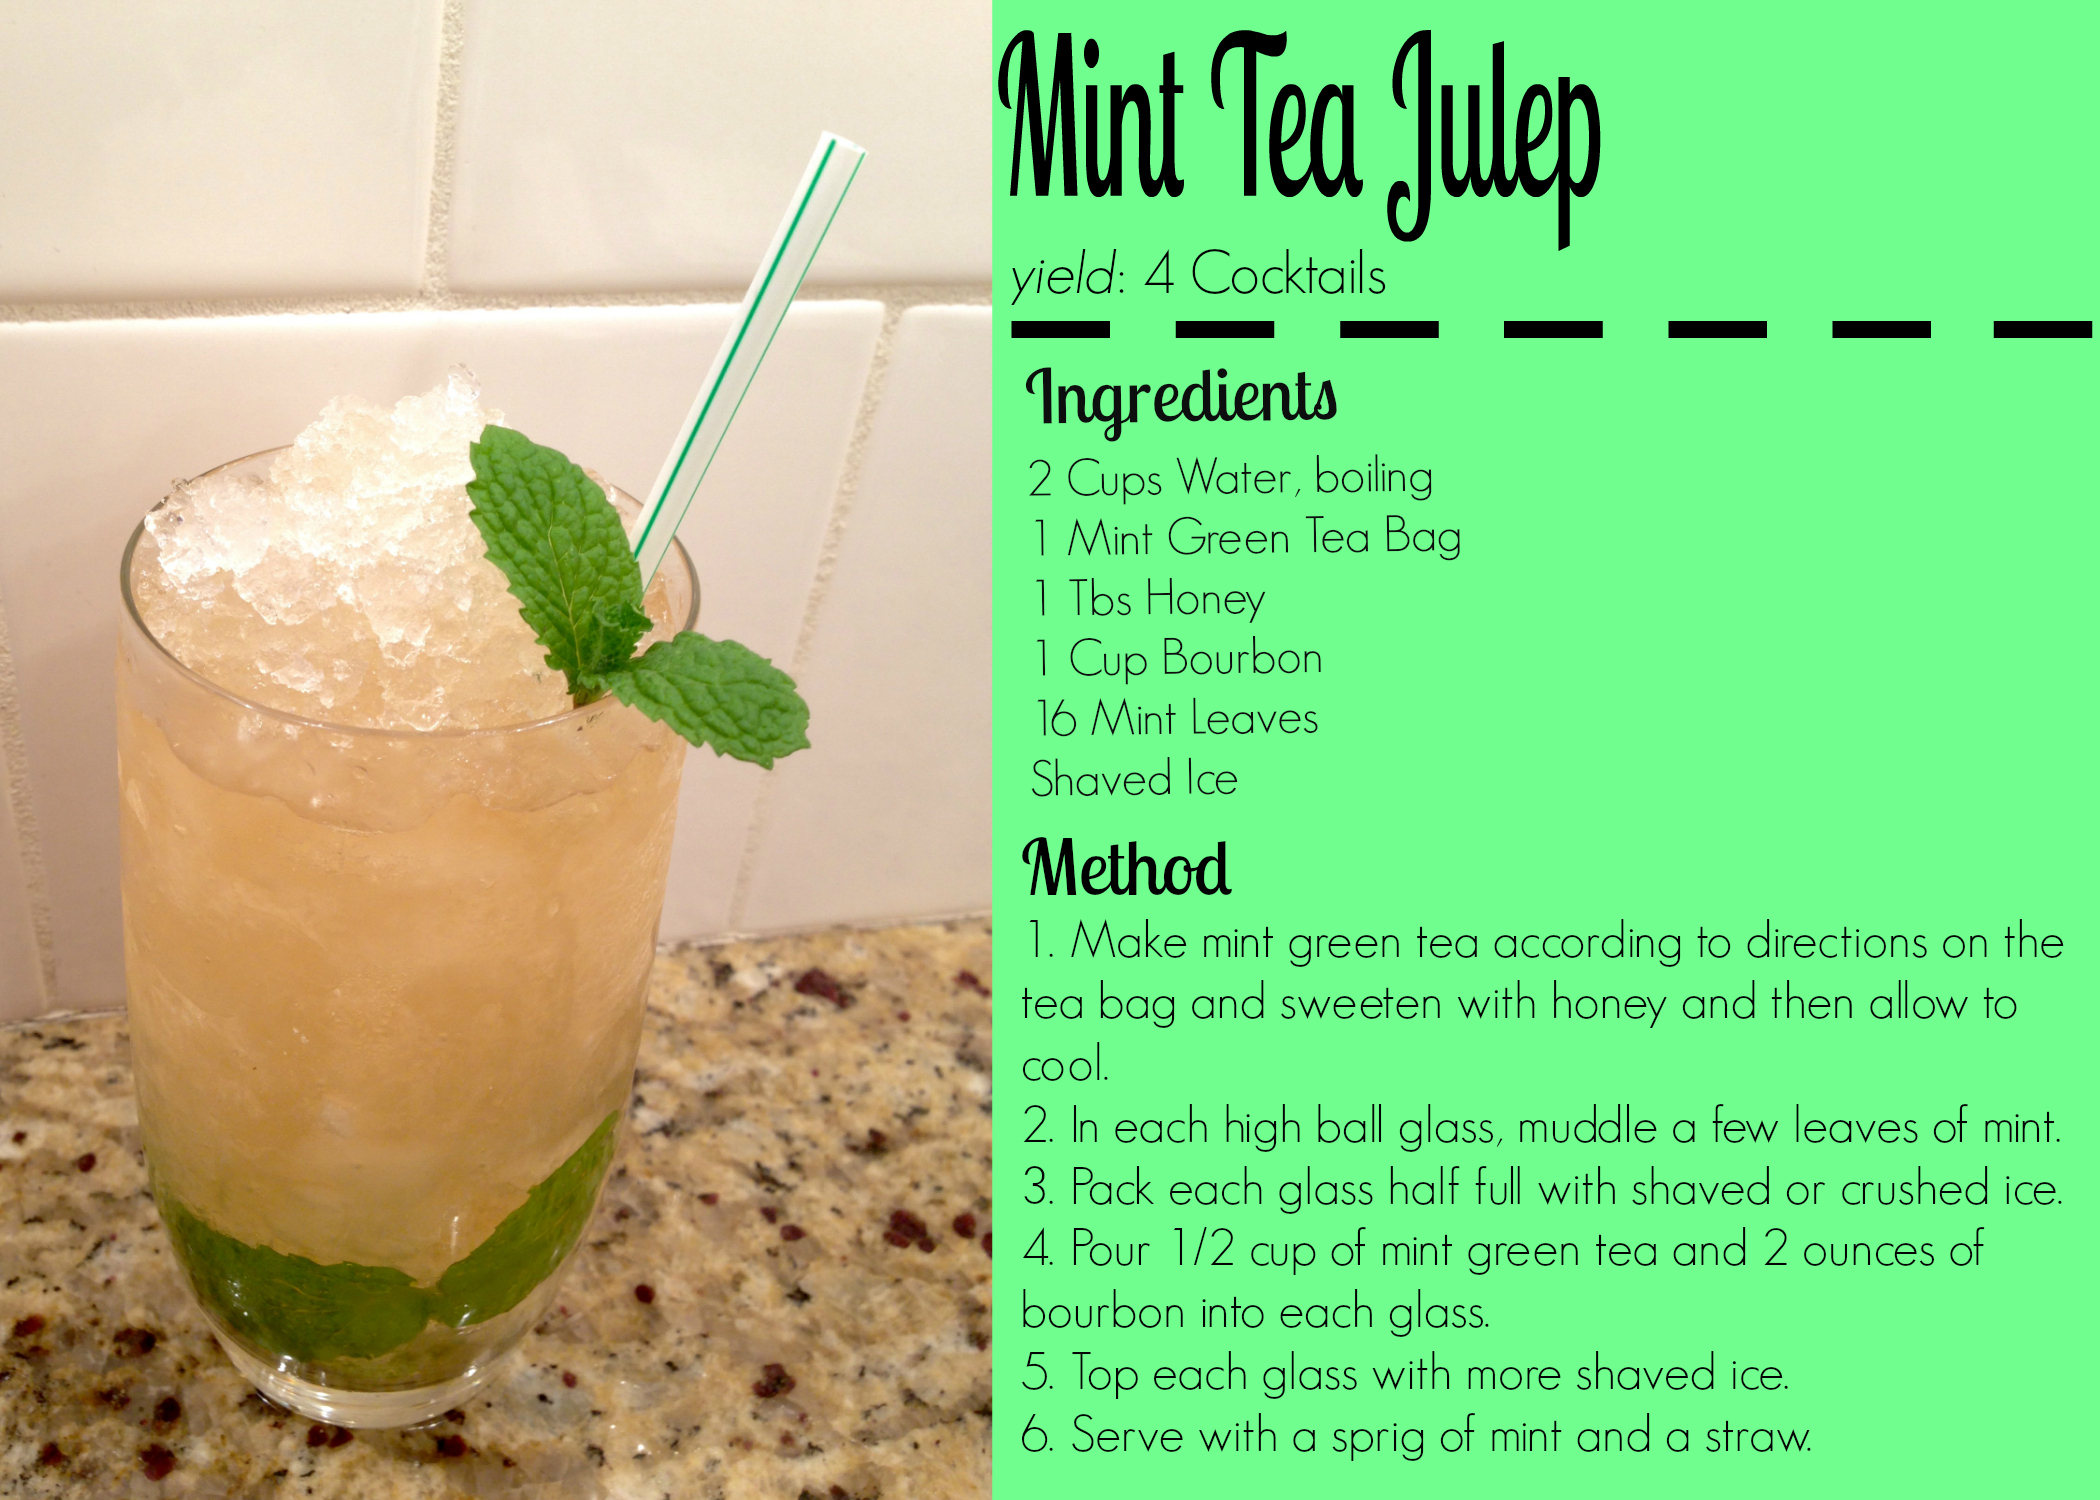 Is Good To Drink A Lot Of Mint Tea